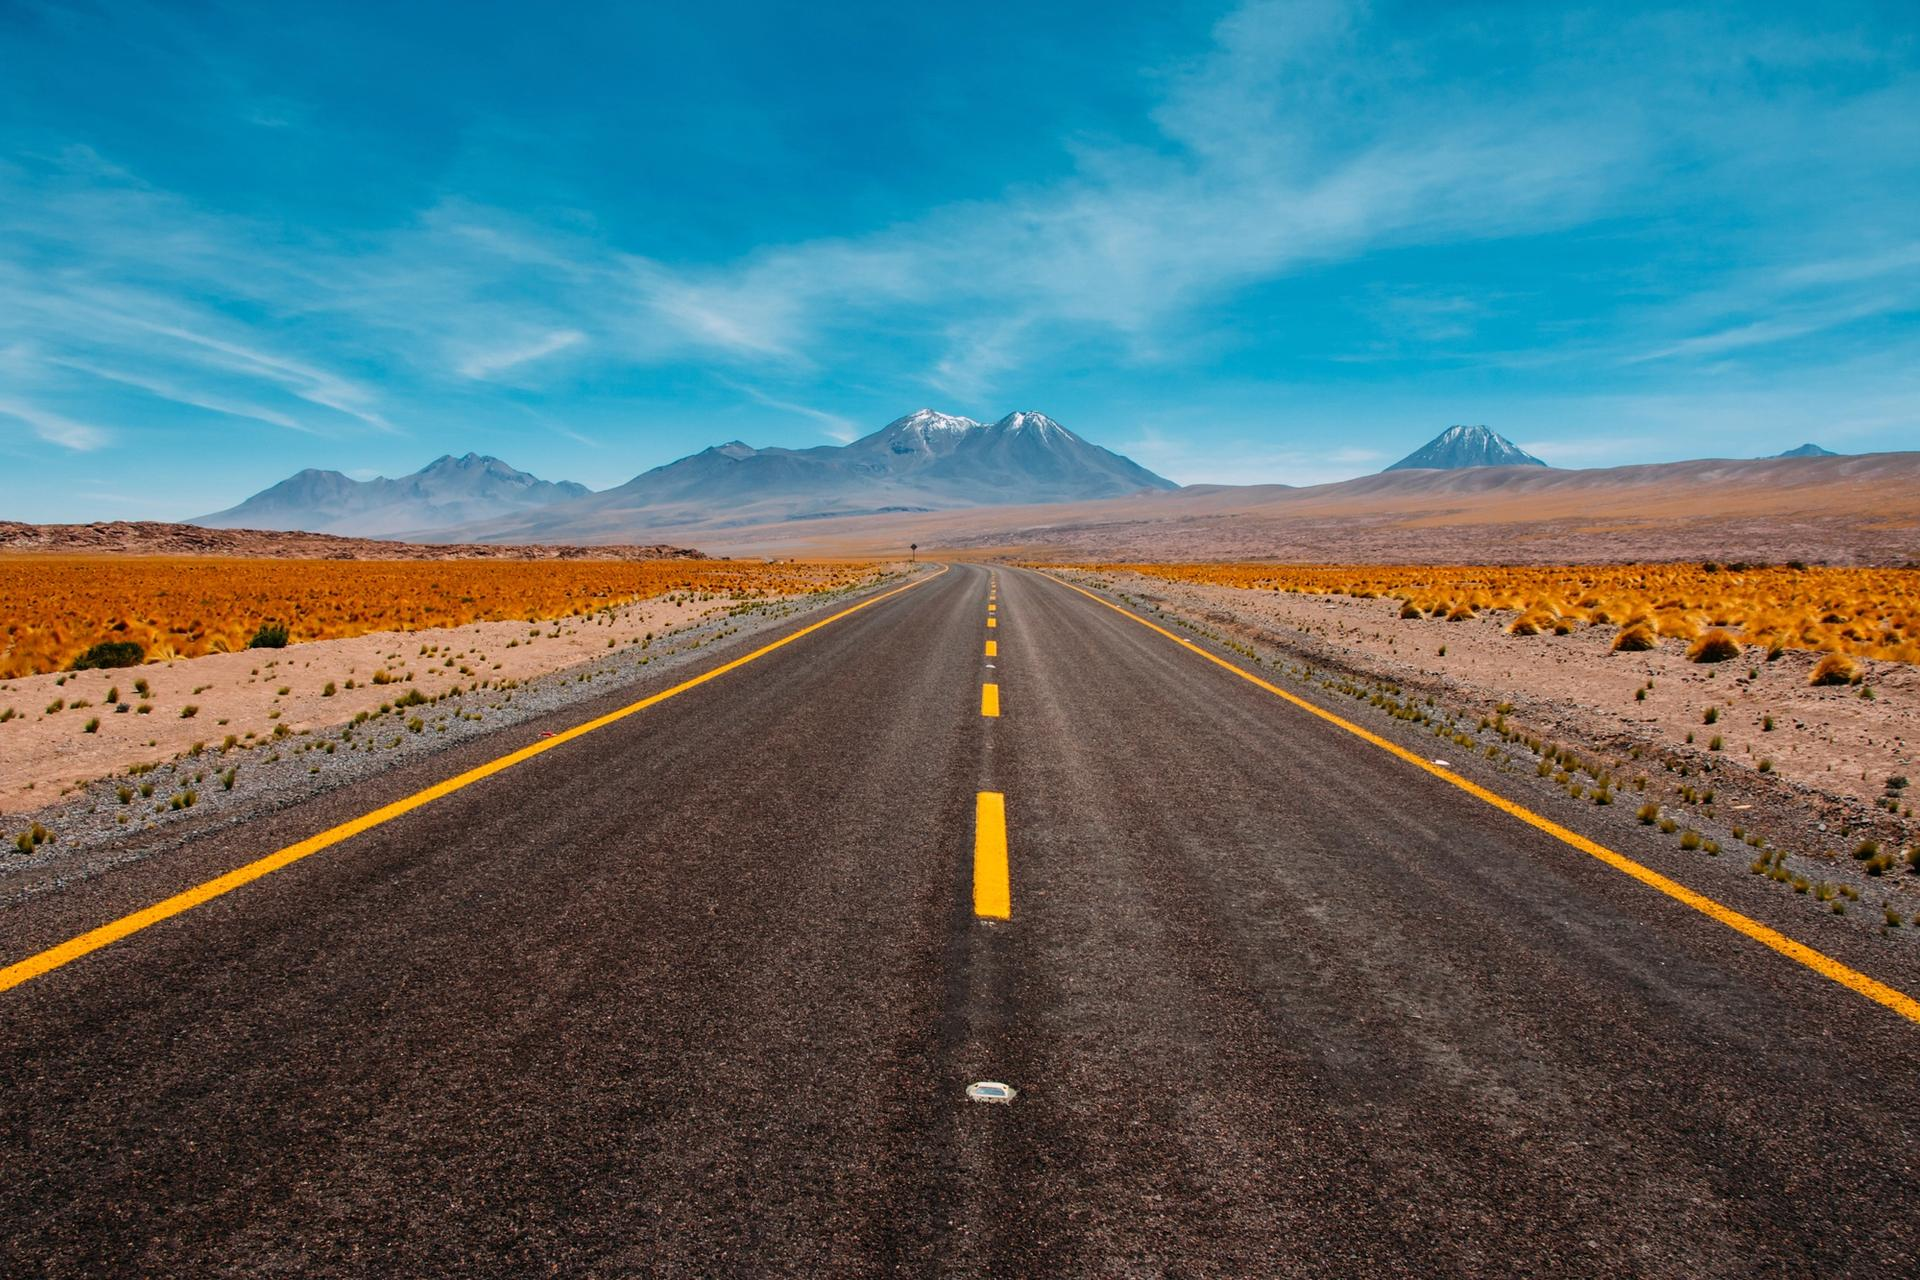 A rural paved one-lane road, with snow-peaked mountains in the far distance.  A glorious blue sky abounds.